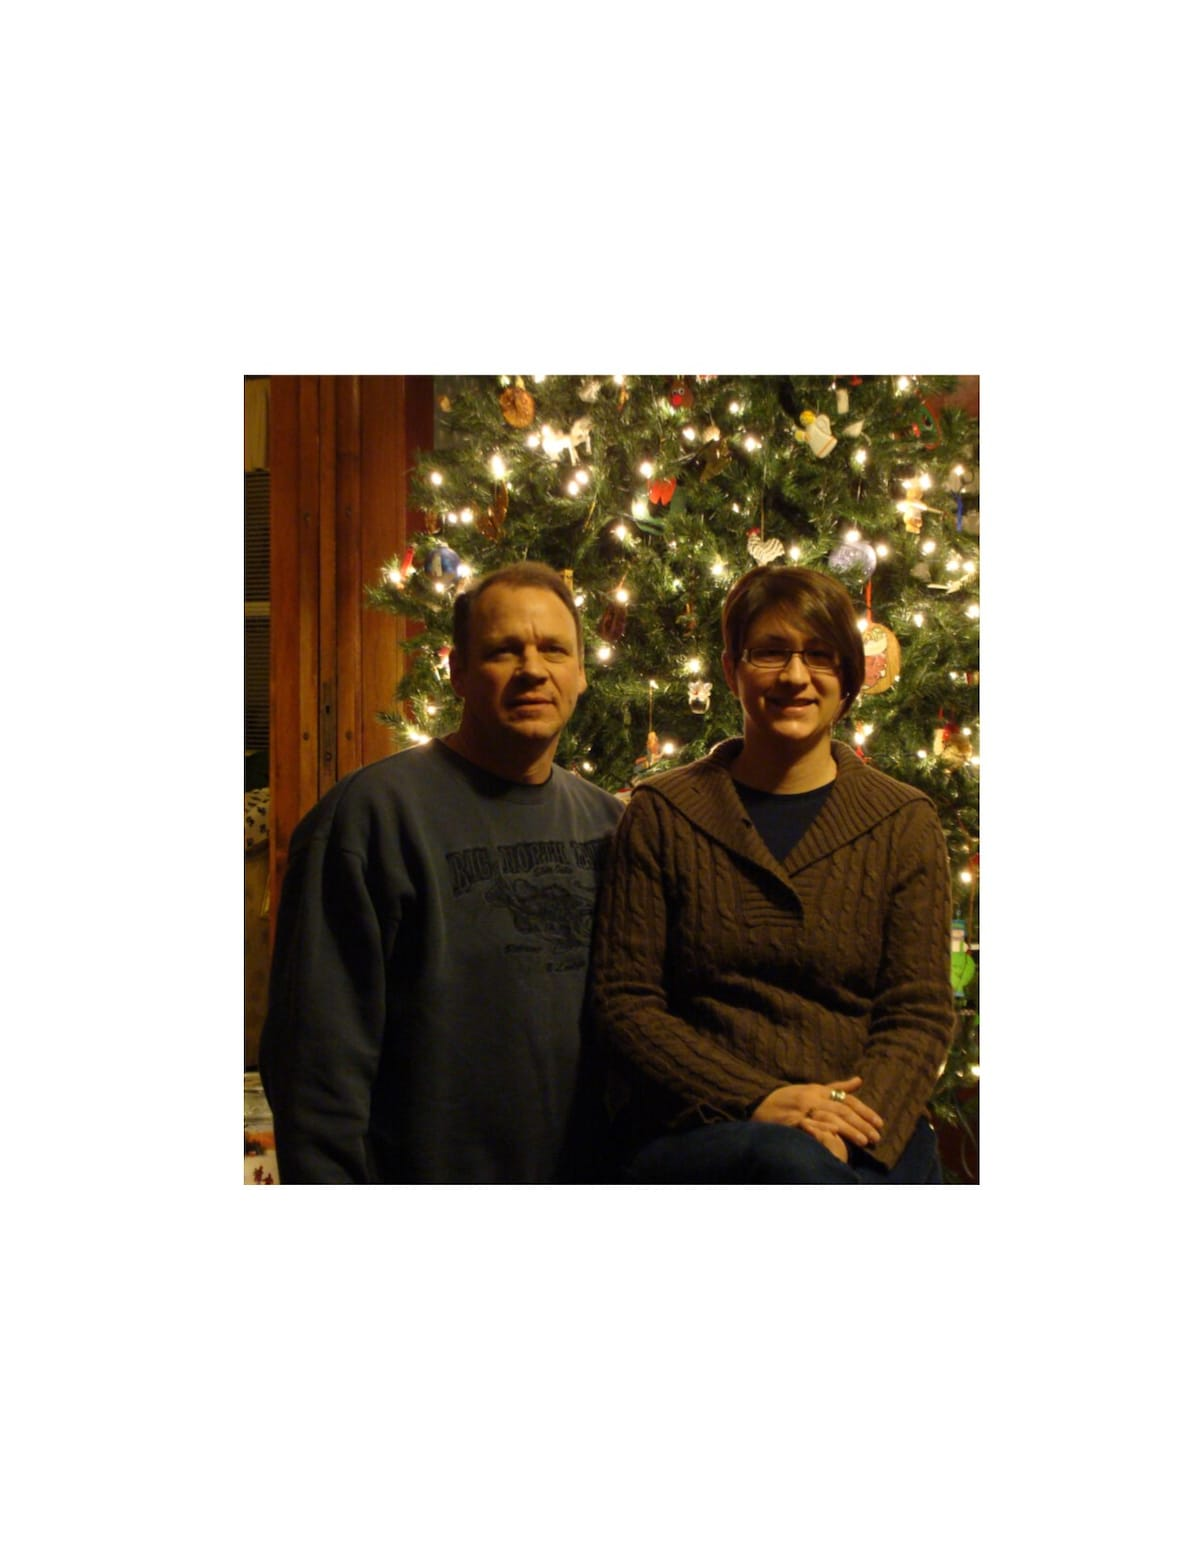 Ron And Sarah From Ashland, OH